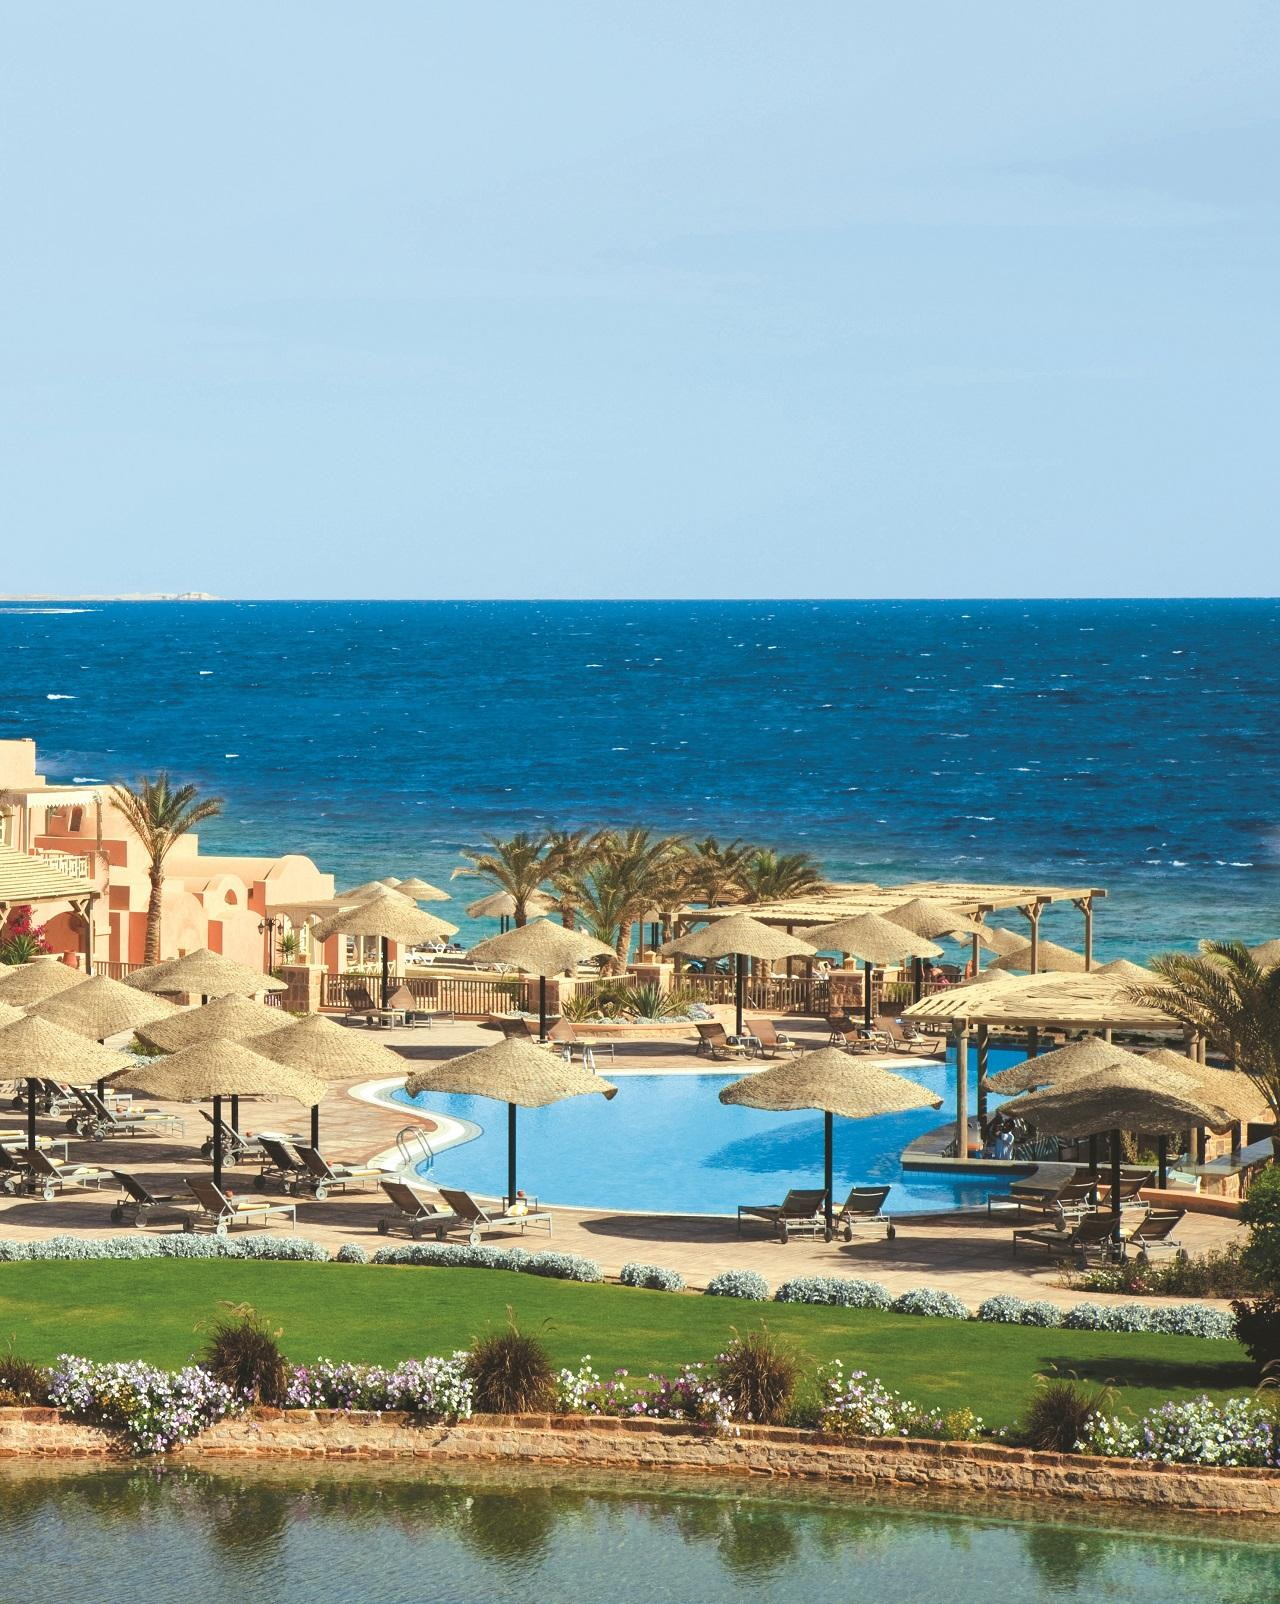 Radisson Blu Resort El Quseir 4* (4*)